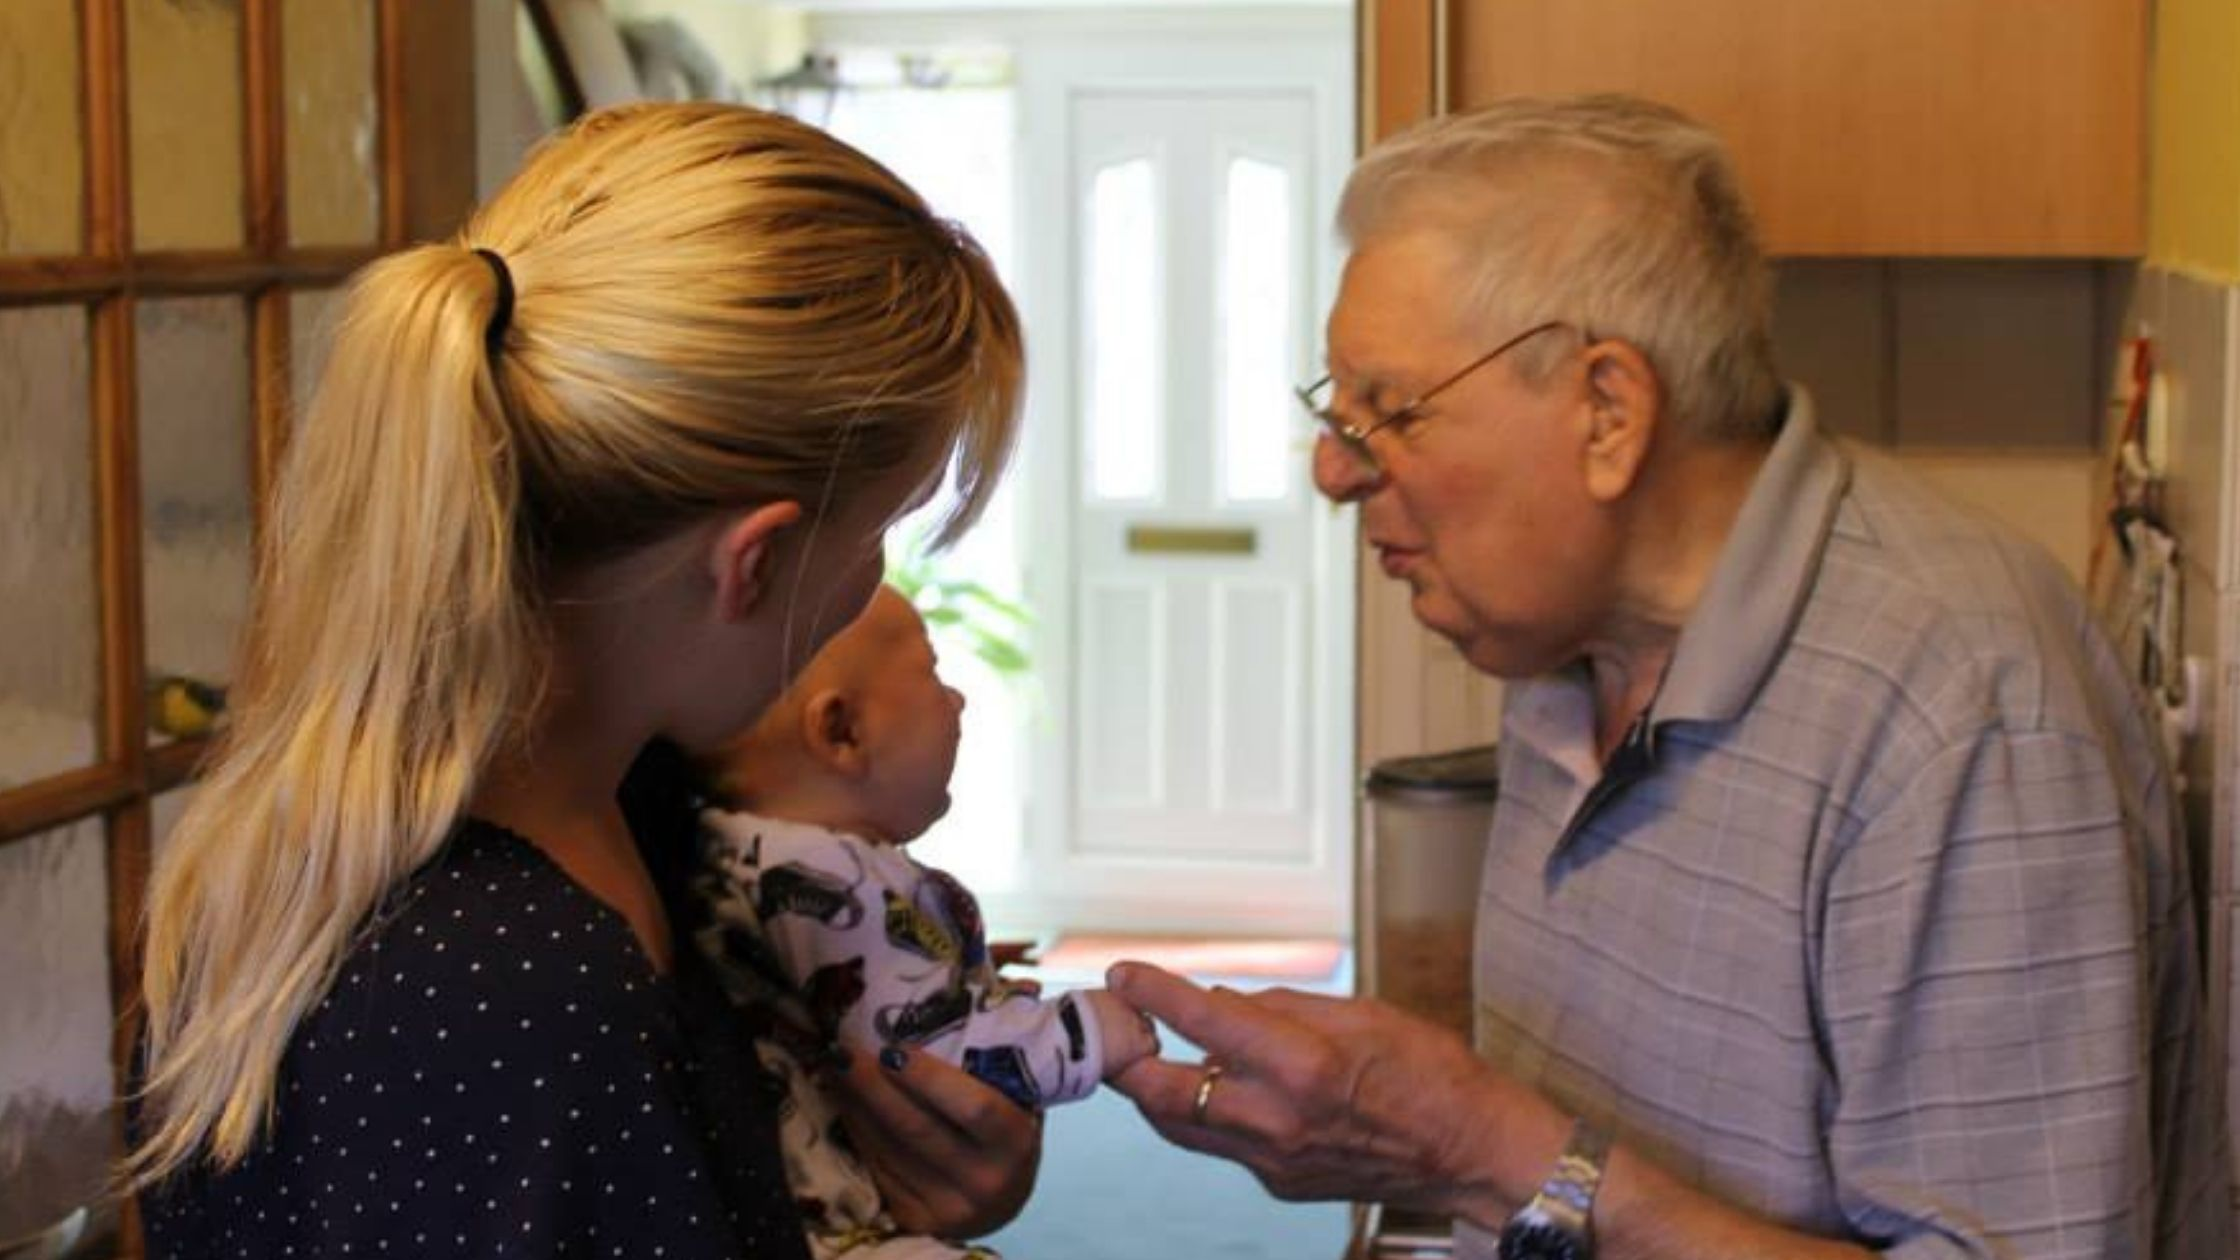 Image shows me holding my baby son and my grandad holding his hand and talking to him